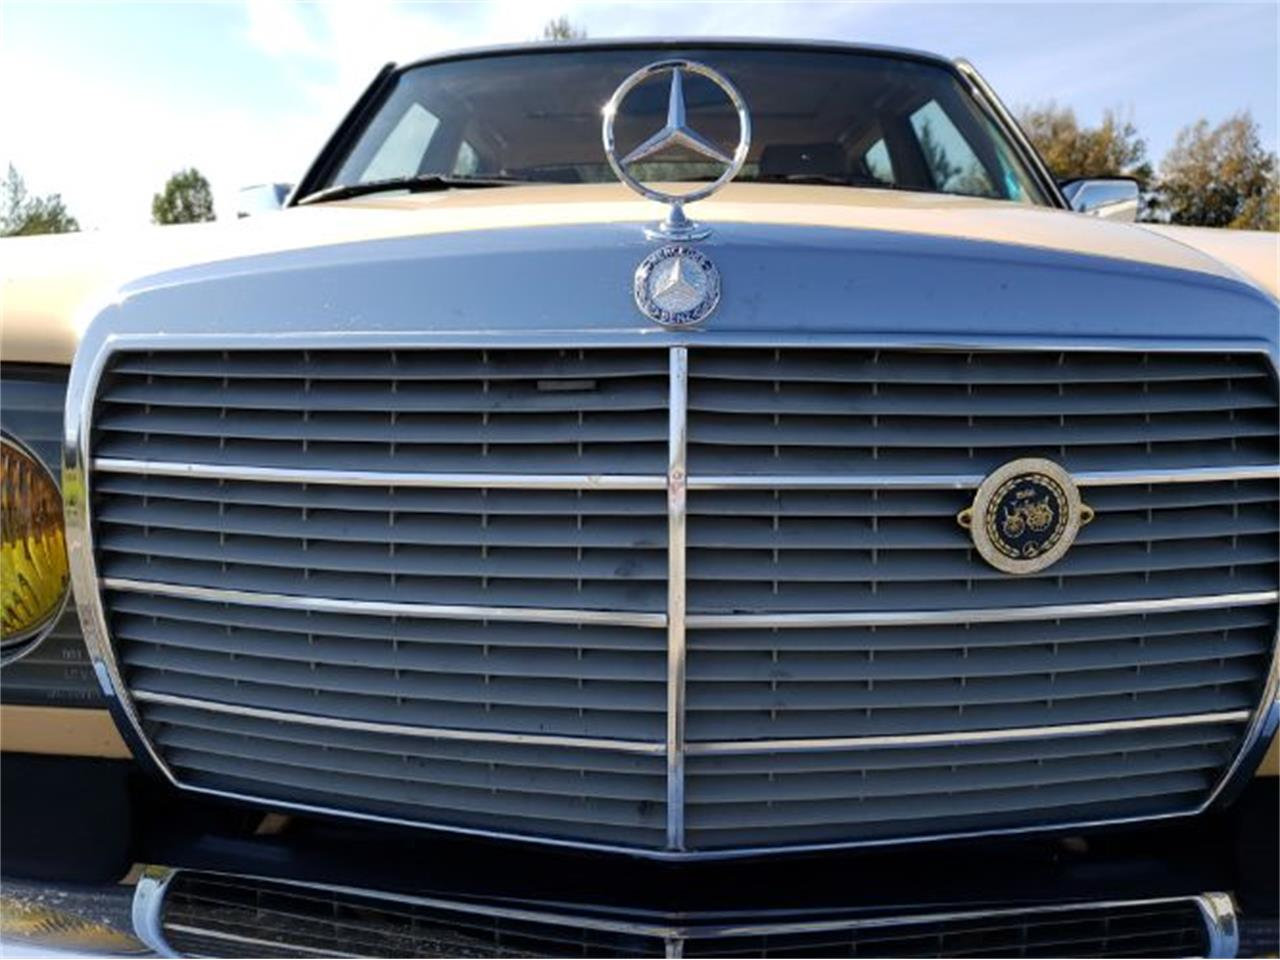 1983 Mercedes-Benz 240D for sale in Cadillac, MI ...